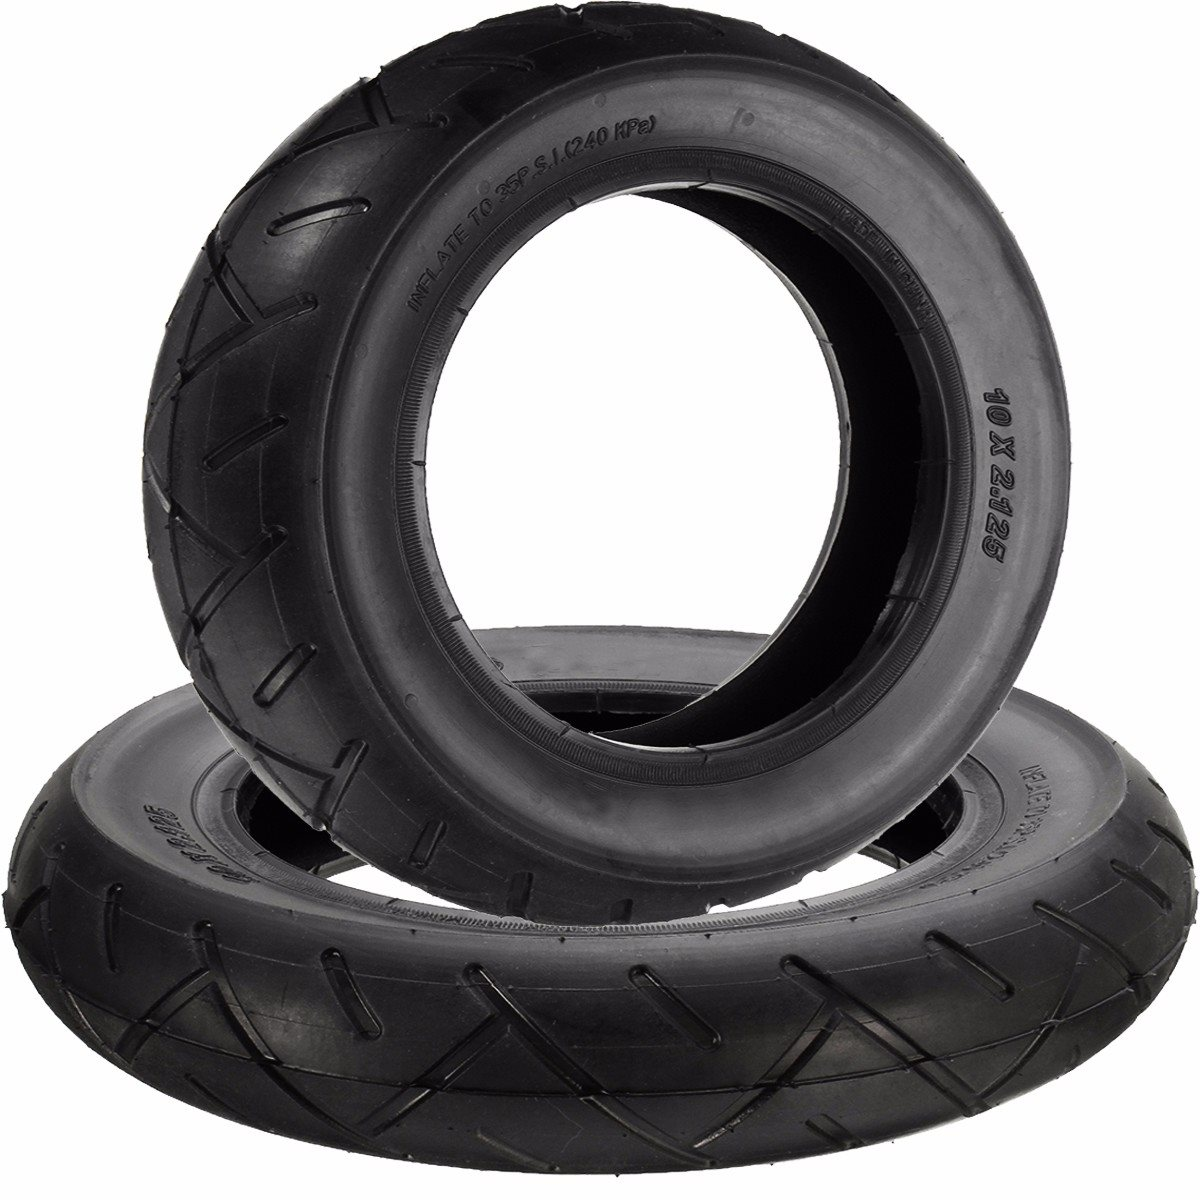 10inch x 2.125inch Tire and Inner Tube for Hoverboard Self Balancing Electric Scooter Natural Rubber Black